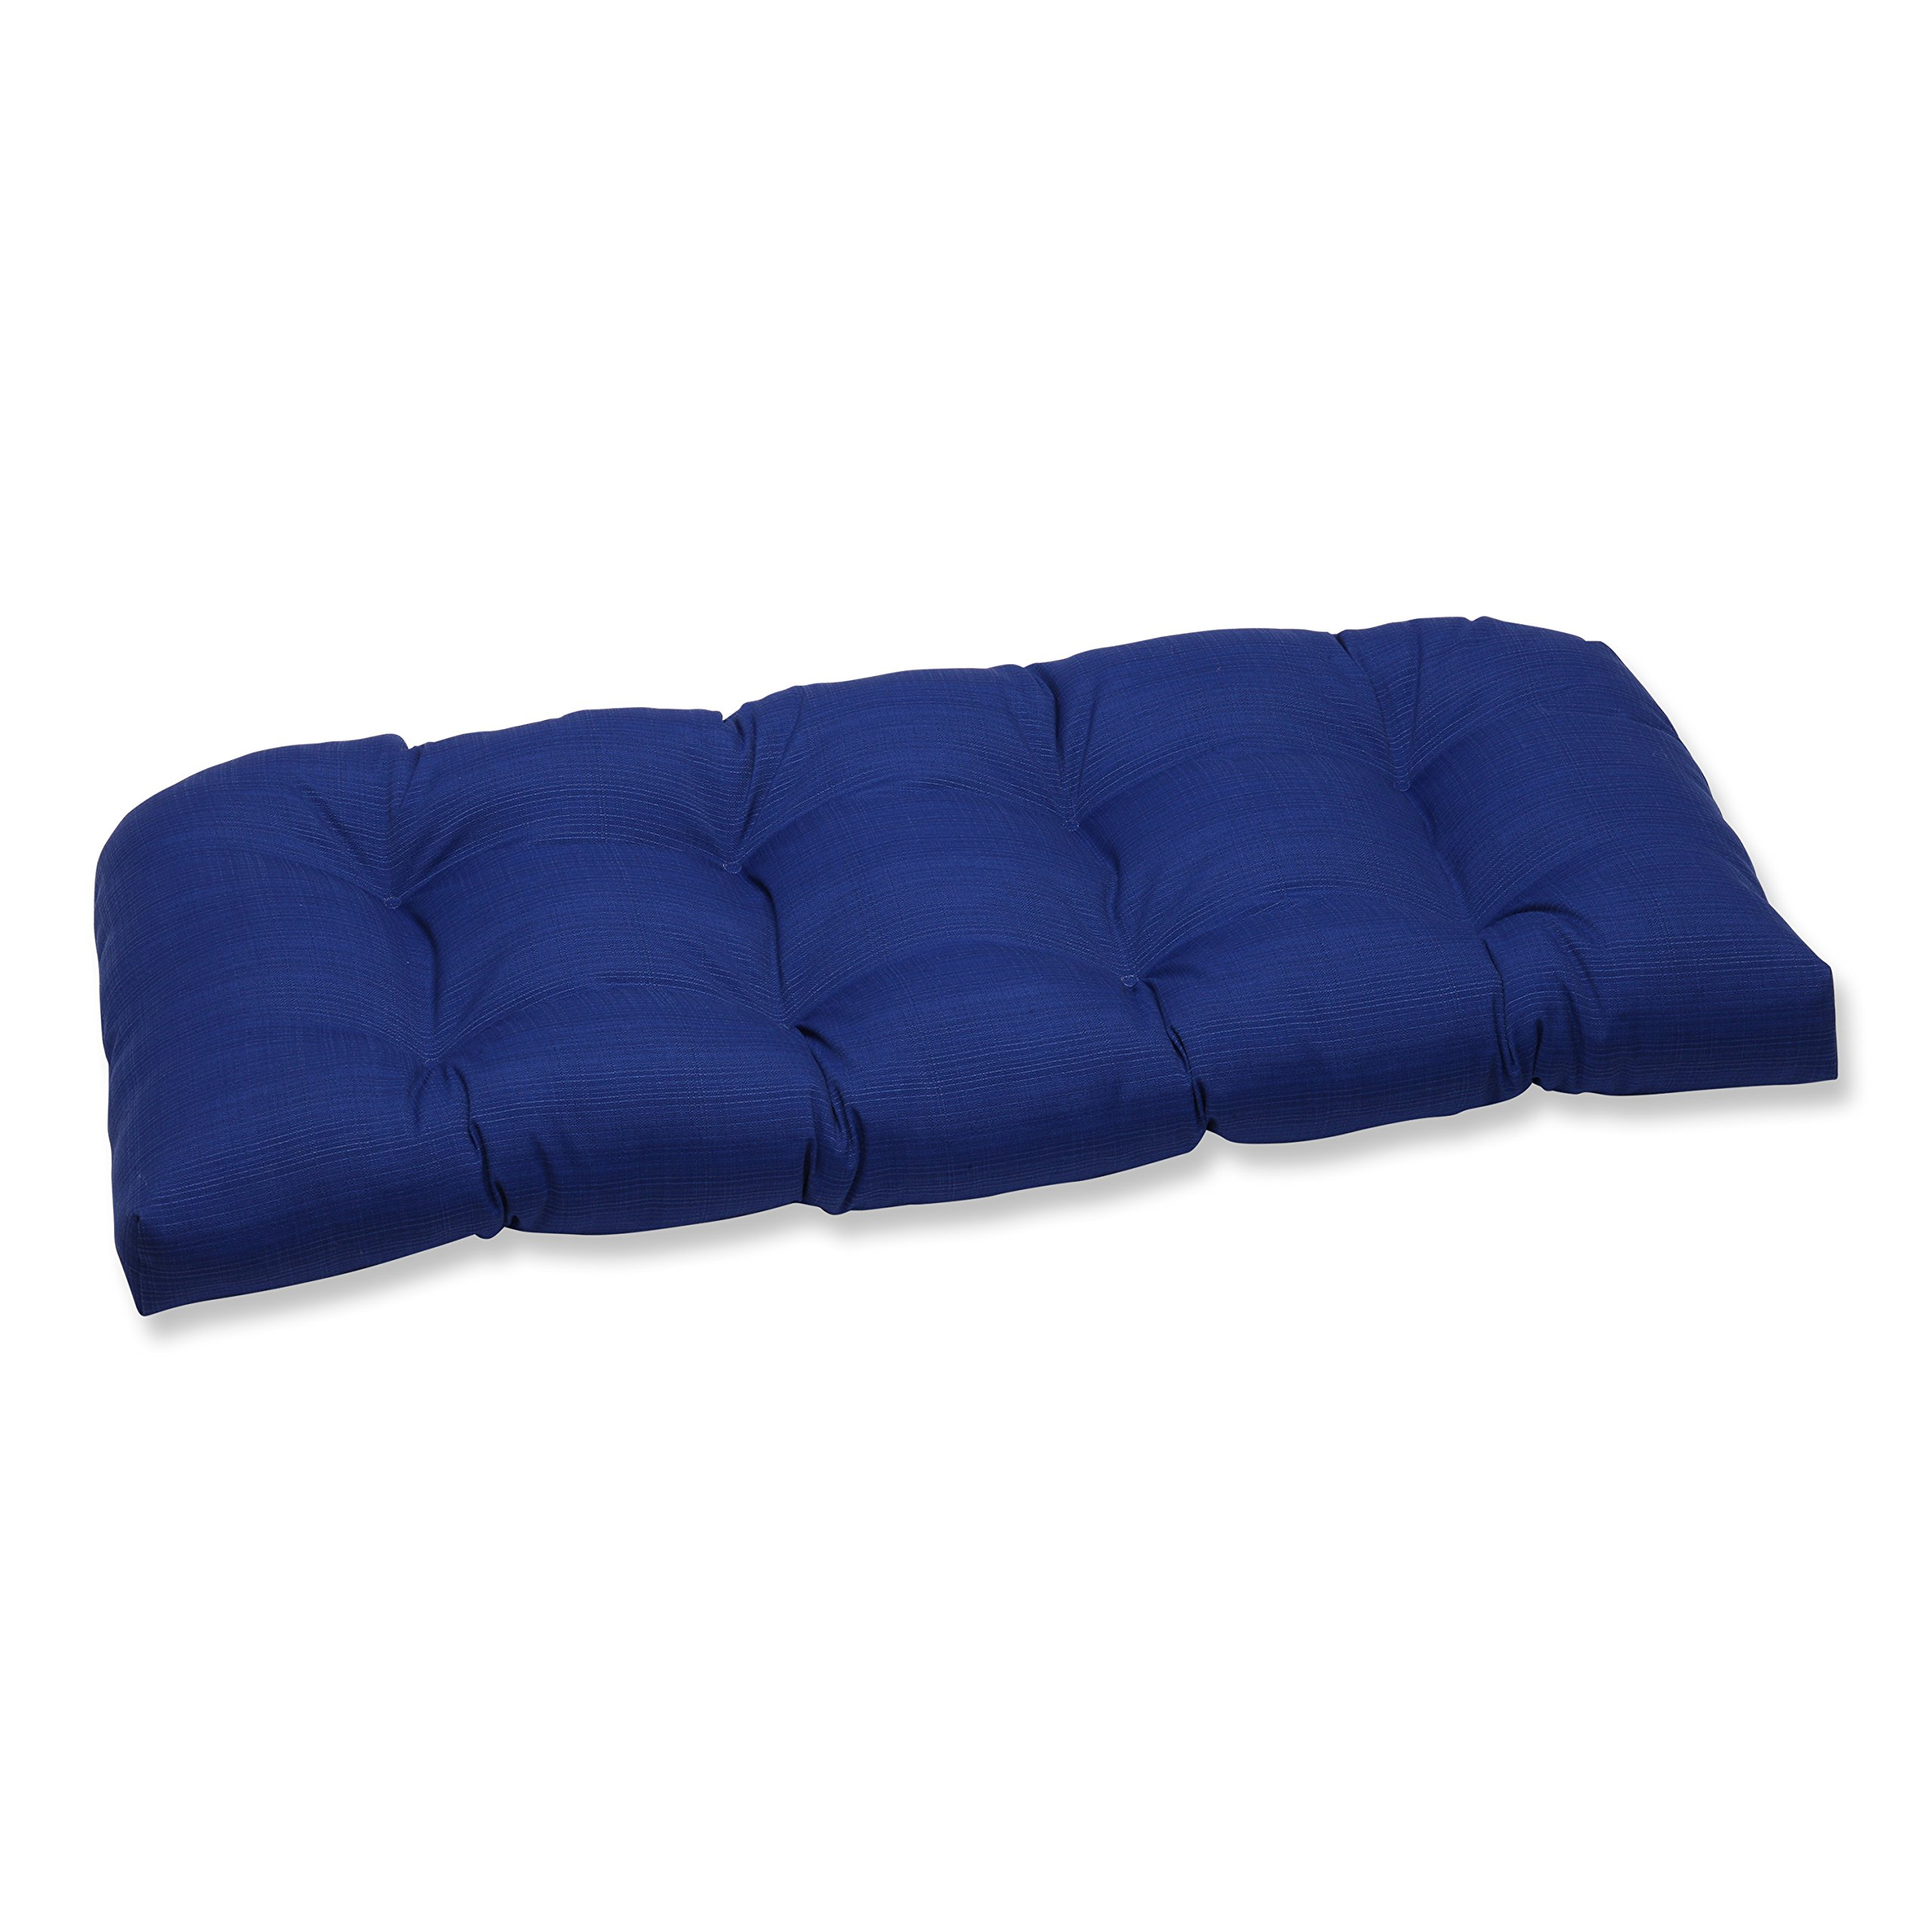 Pillow Perfect Outdoor/Indoor Wicker Loveseat Cushion 44'' x 19'' Navy